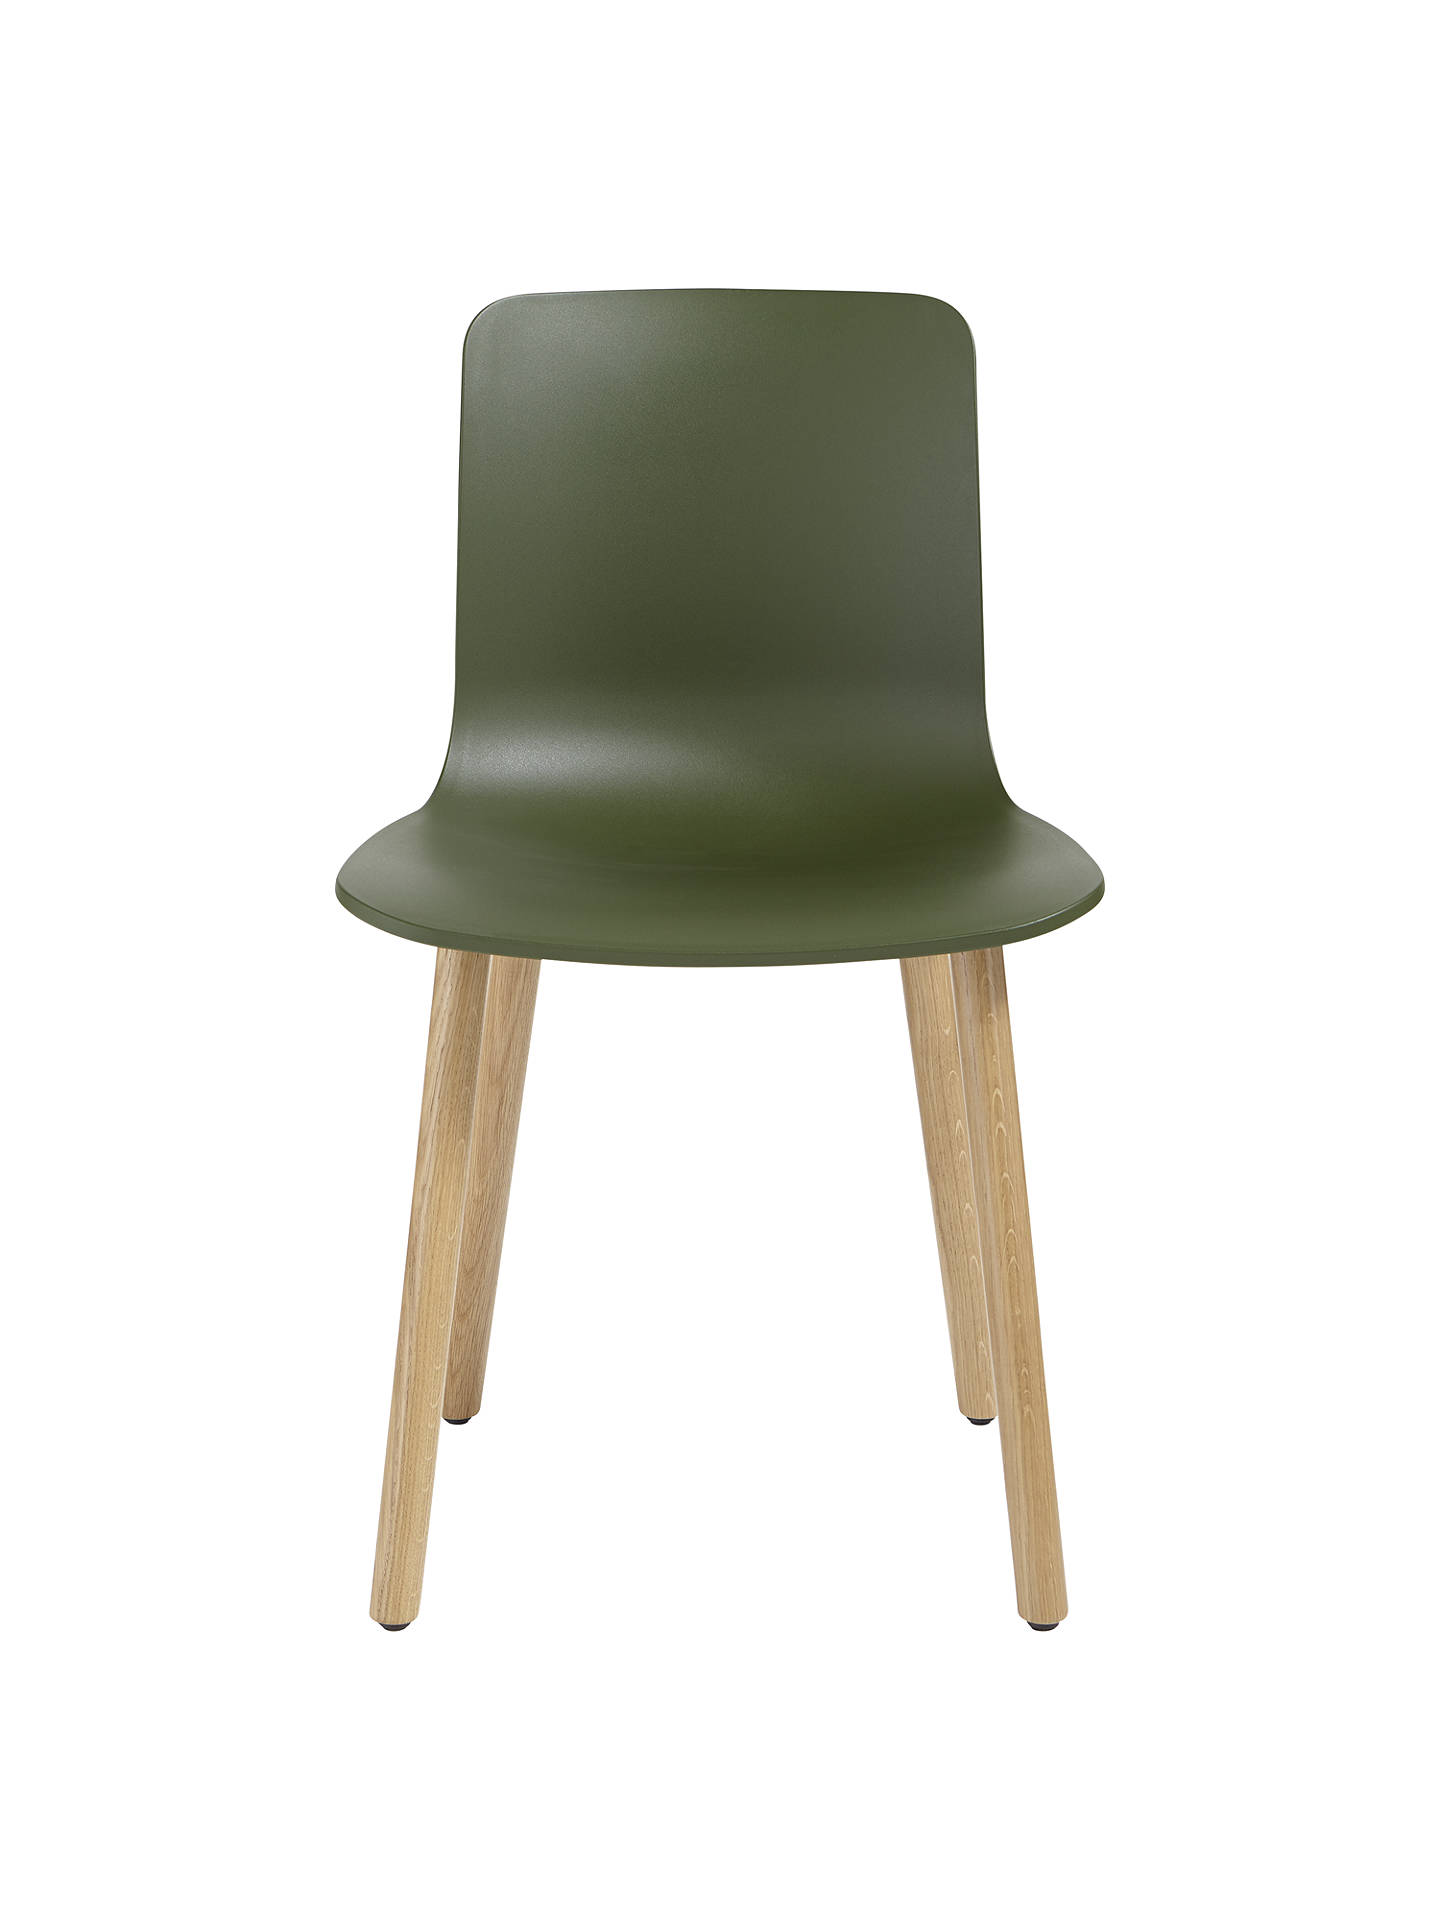 BuyVitra HAL Chair, Light Oak Leg, Ivy Online at johnlewis.com